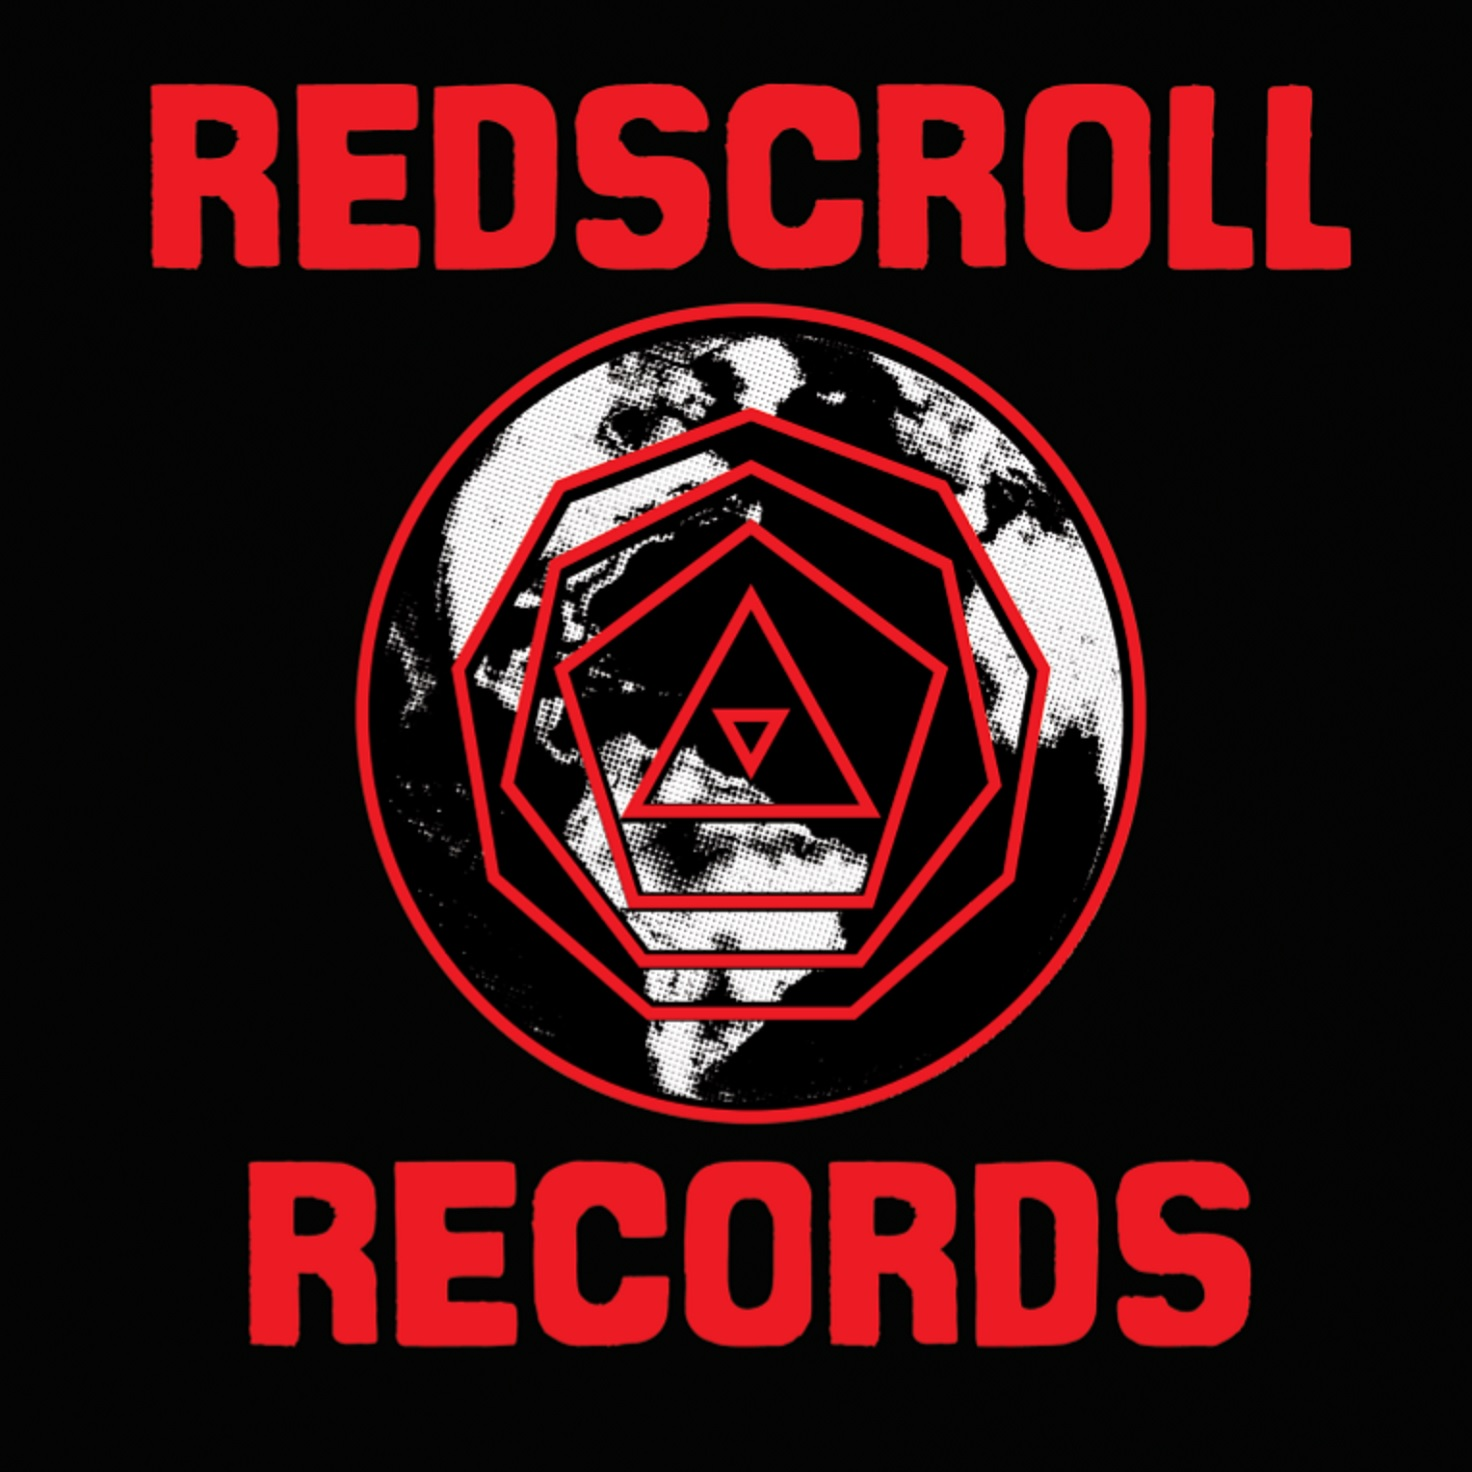 redscroll's podcast